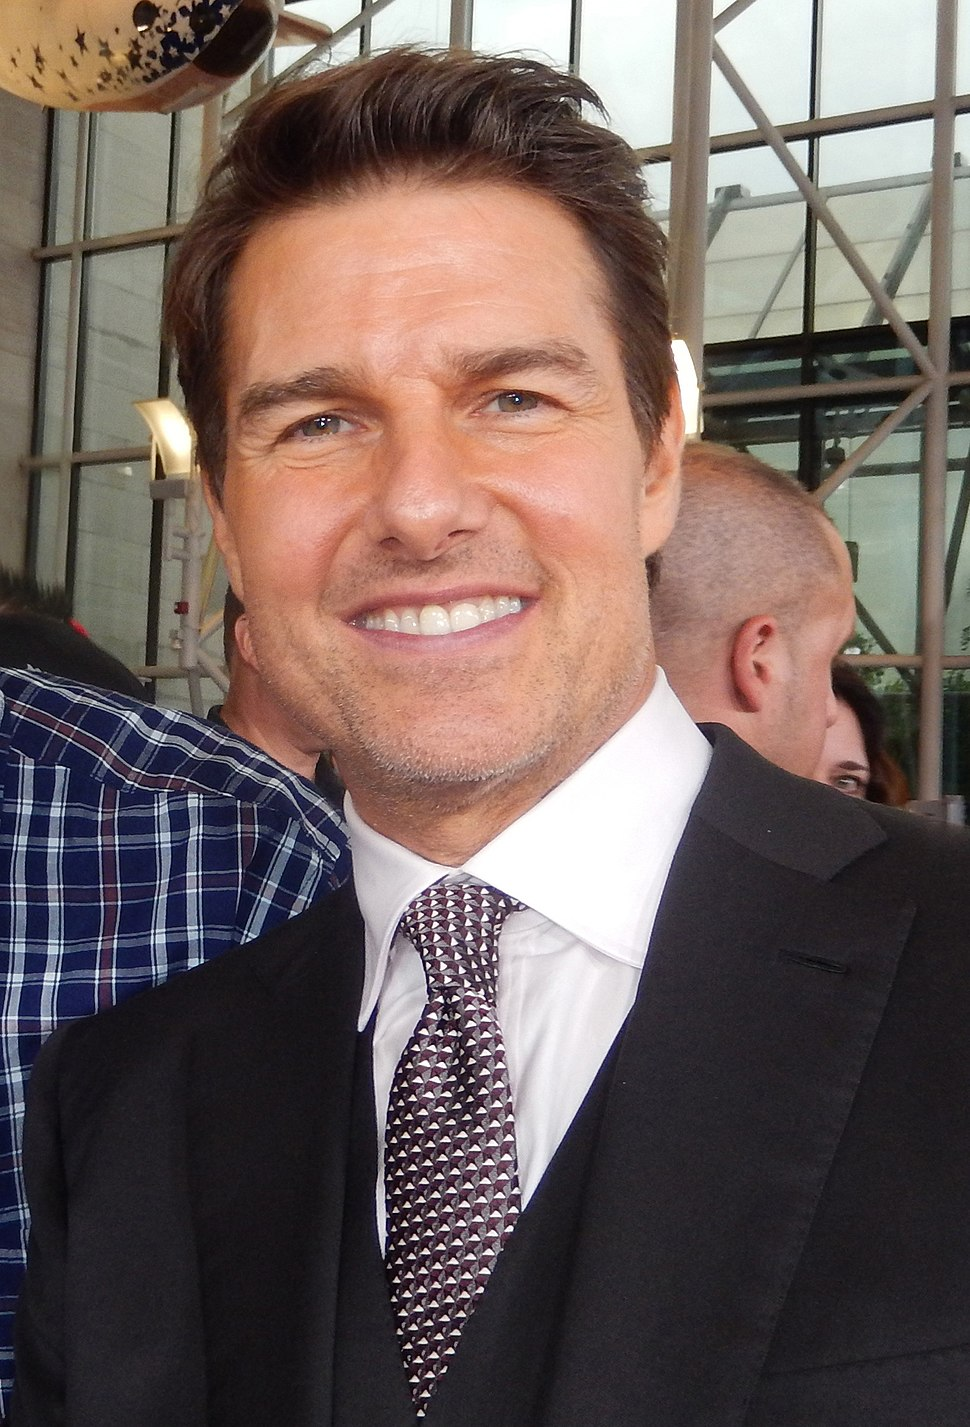 Tom Cruise in 2018 (cropped)